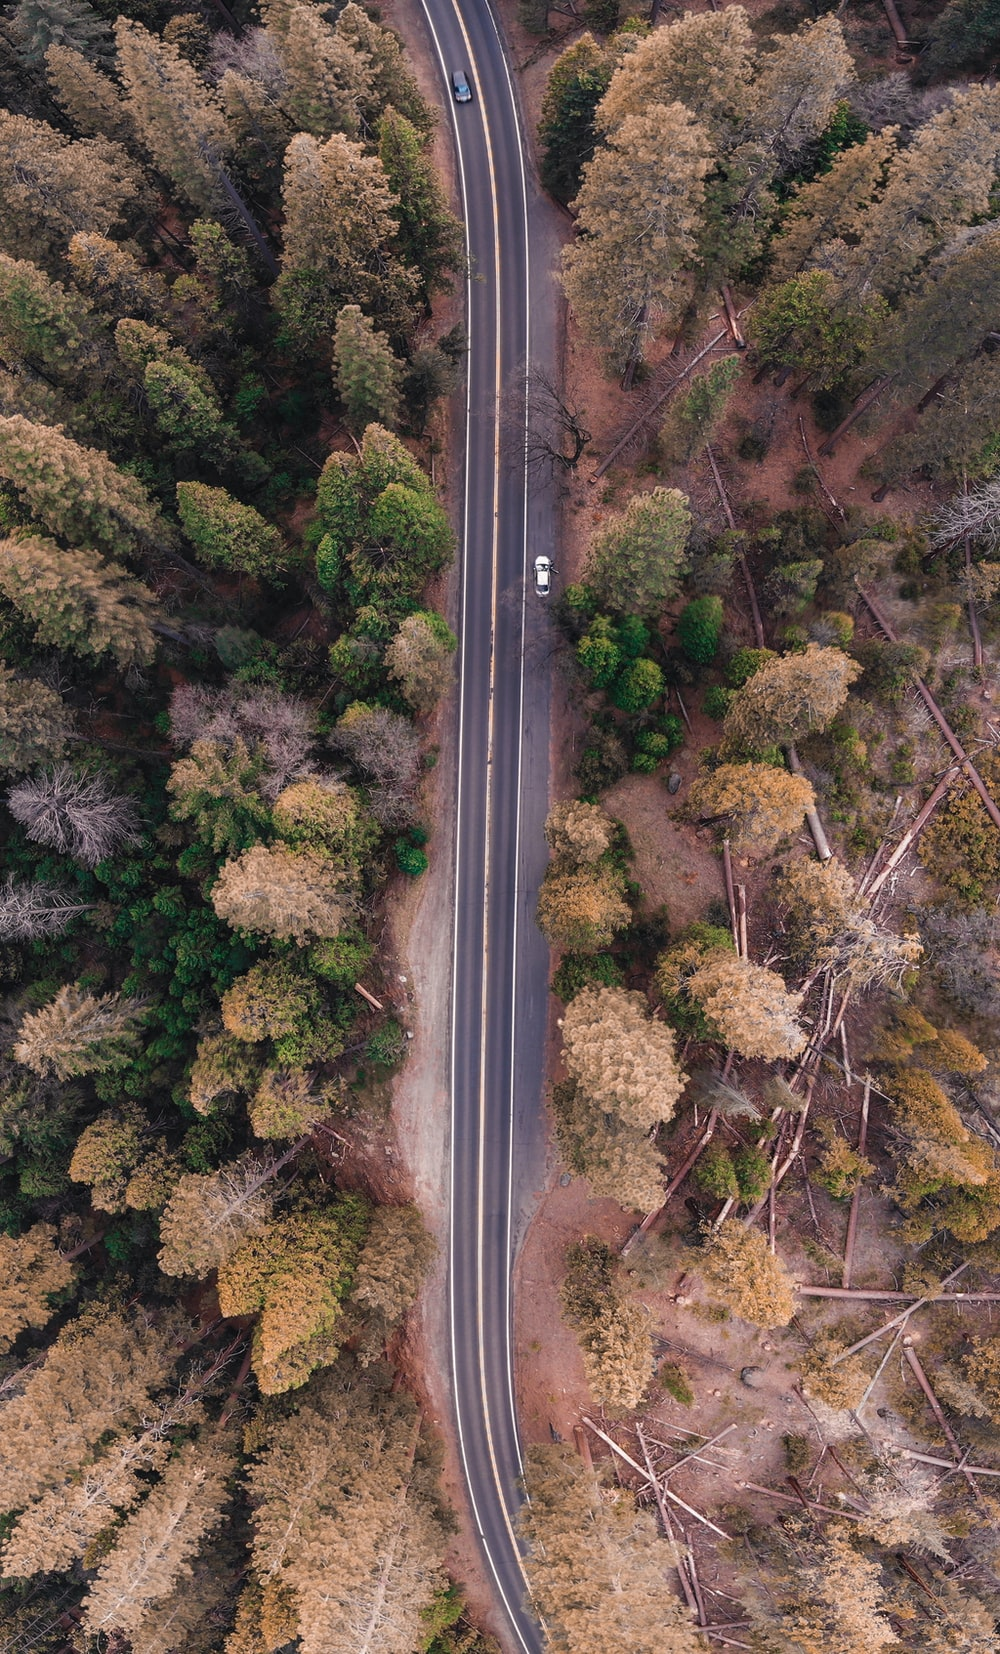 bird's eye view photo of road in the middle of forest